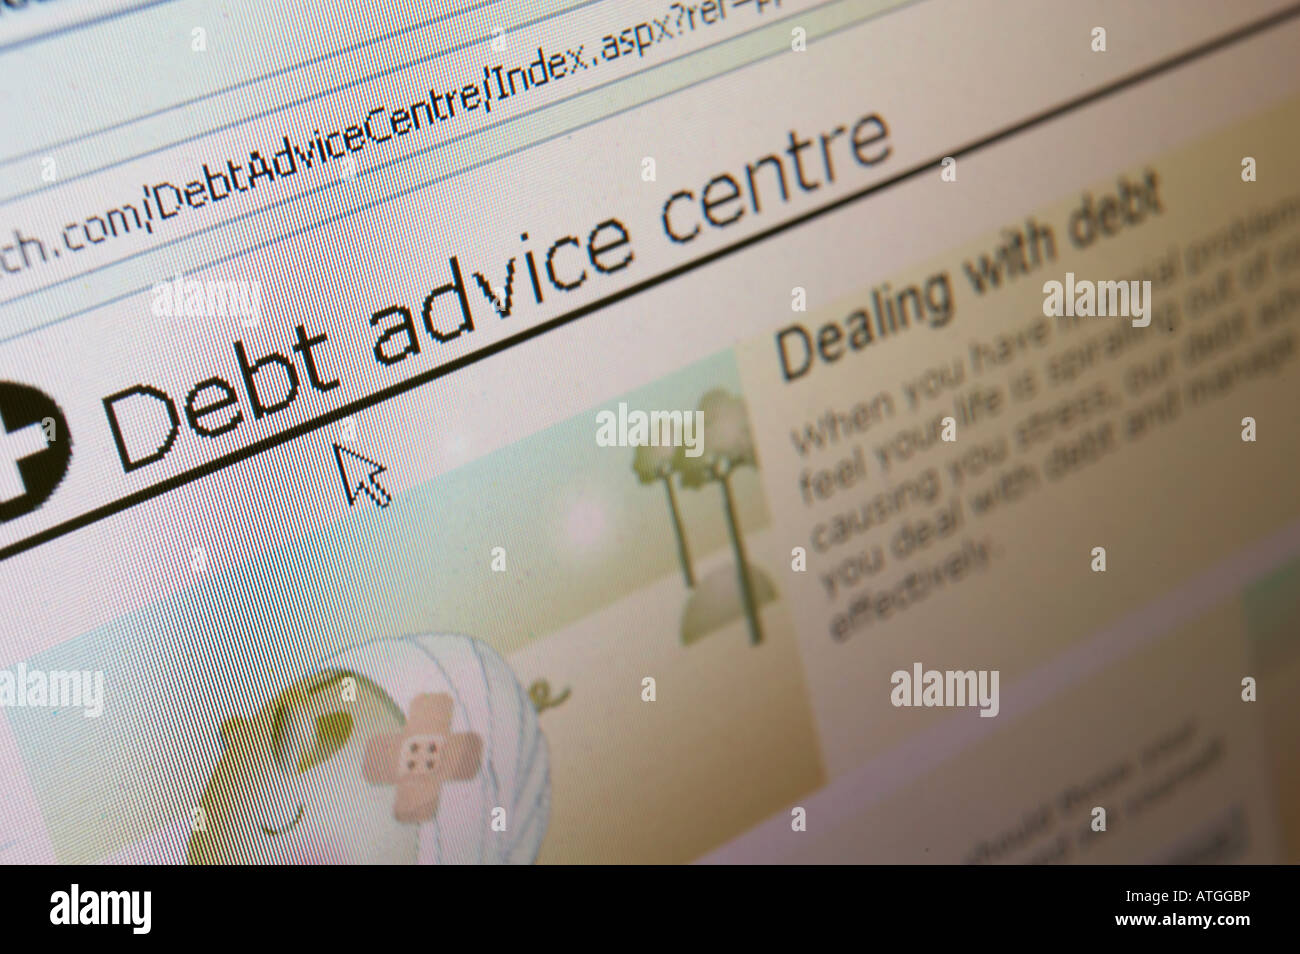 WEB SITE ON COMPUTER SCREEN SHOWING DEBT ADVICE - Stock Image